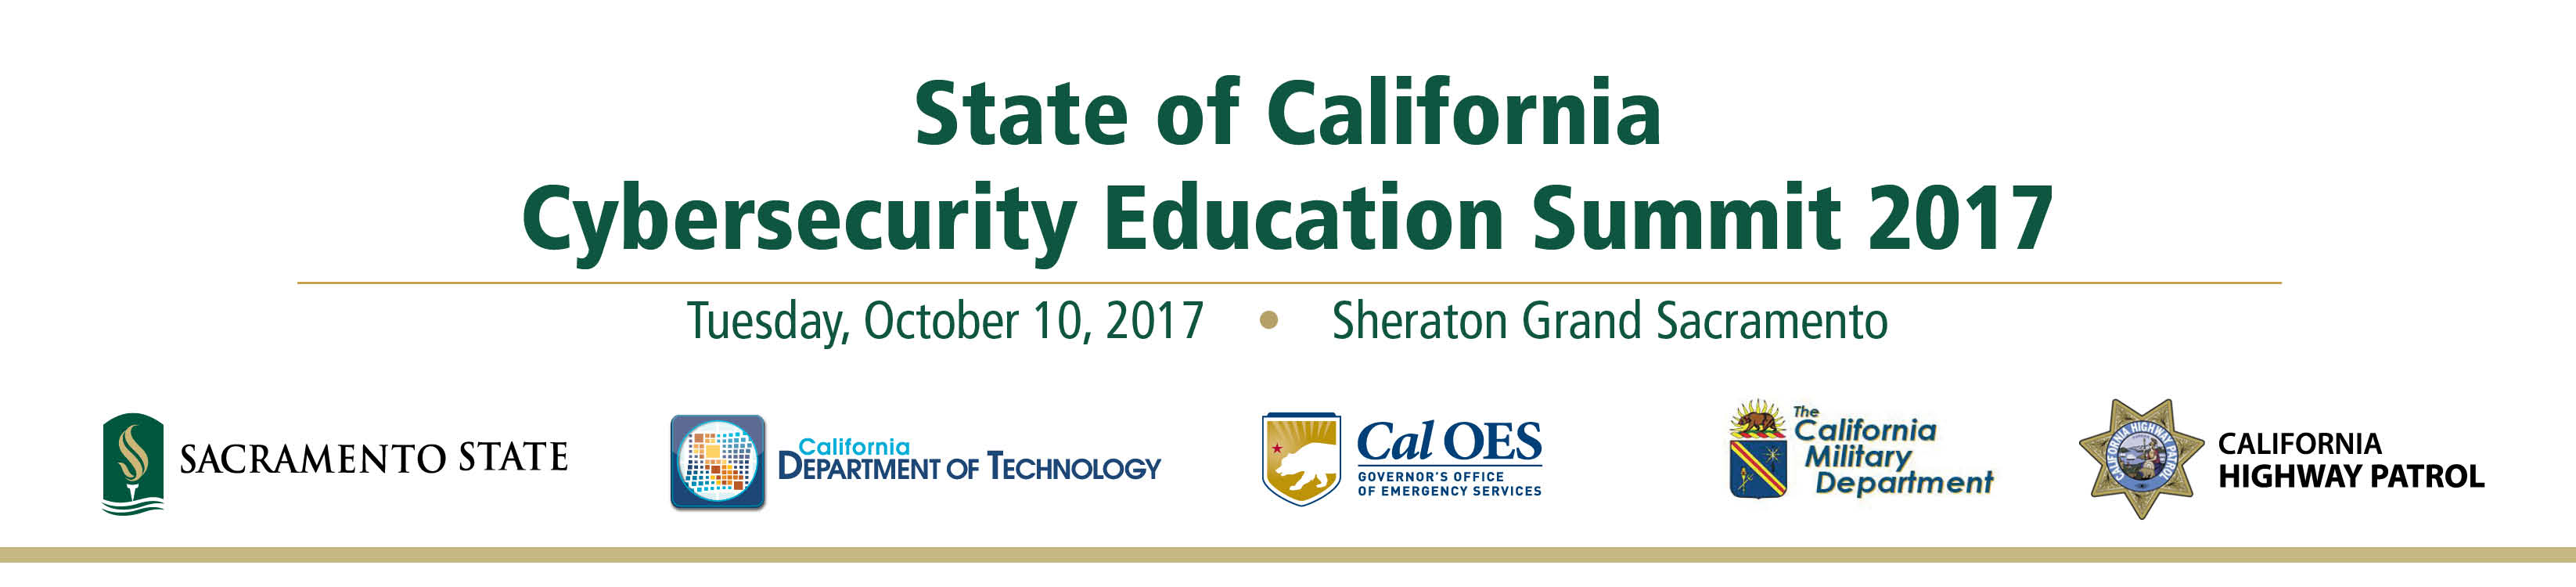 State of California Cybersecurity Education Summit 2017 - Sponsorships